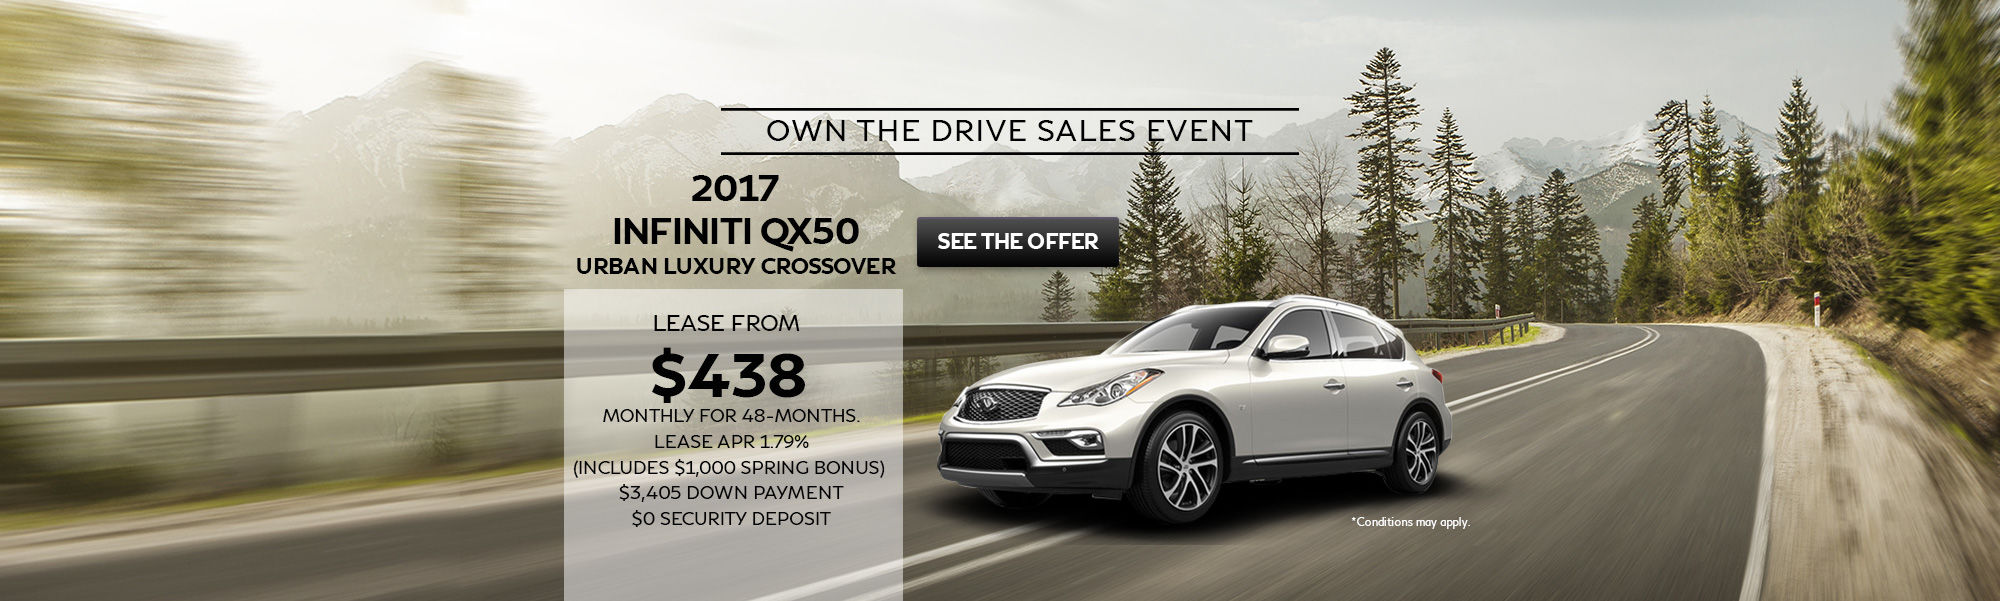 Own The Drive Sales Event QX50 Urban